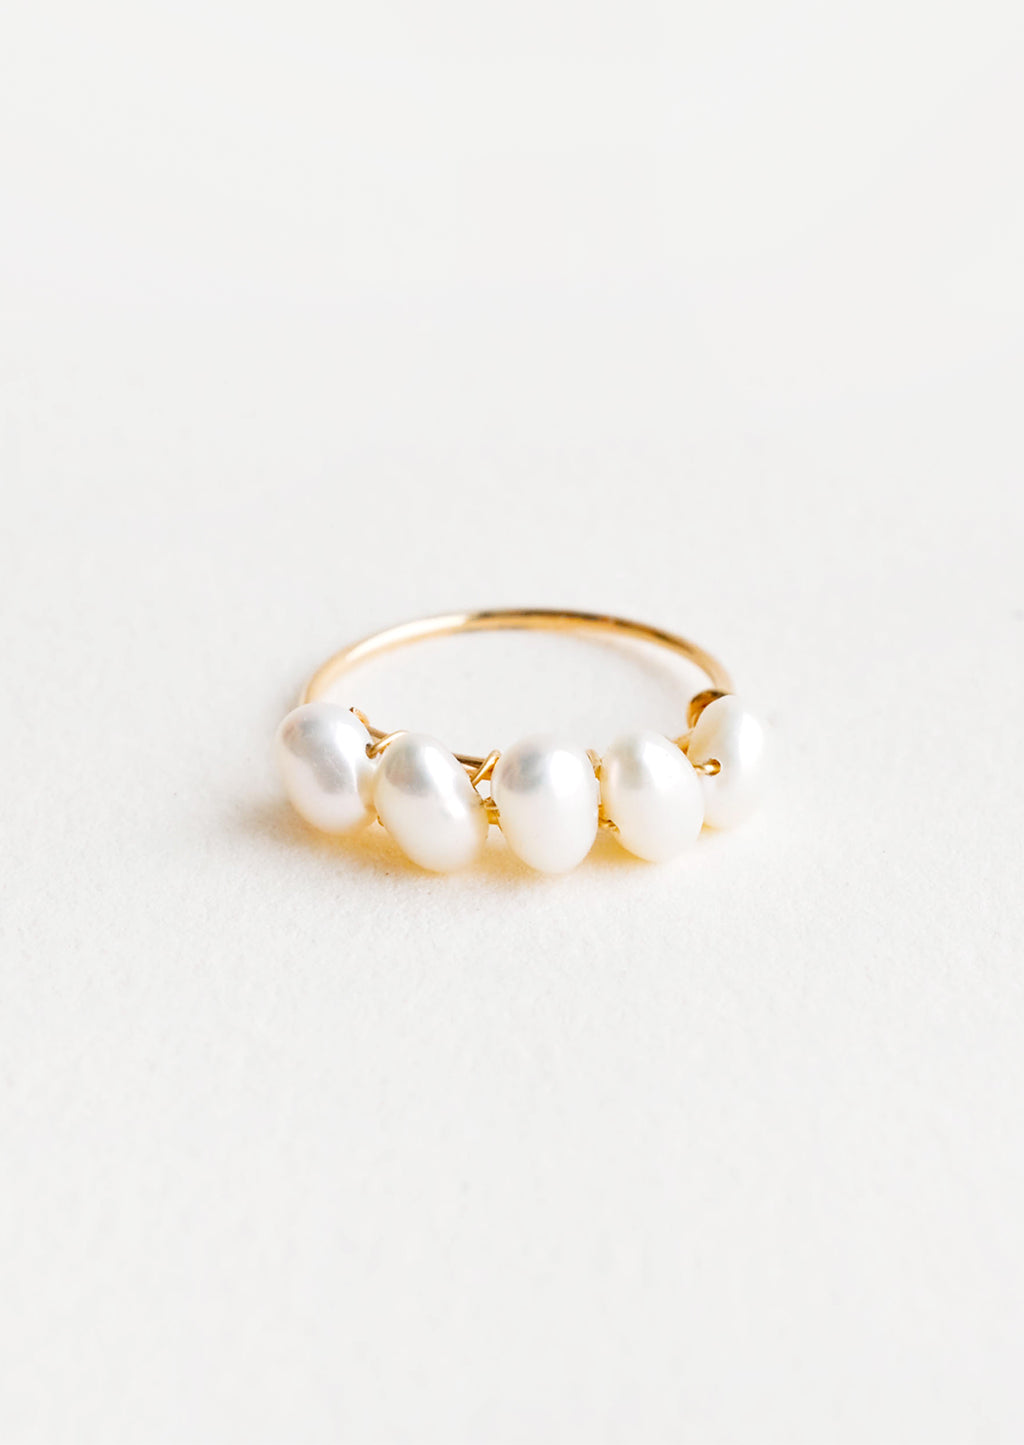 1: Thin gold ring with multiple pearls wrapped around front